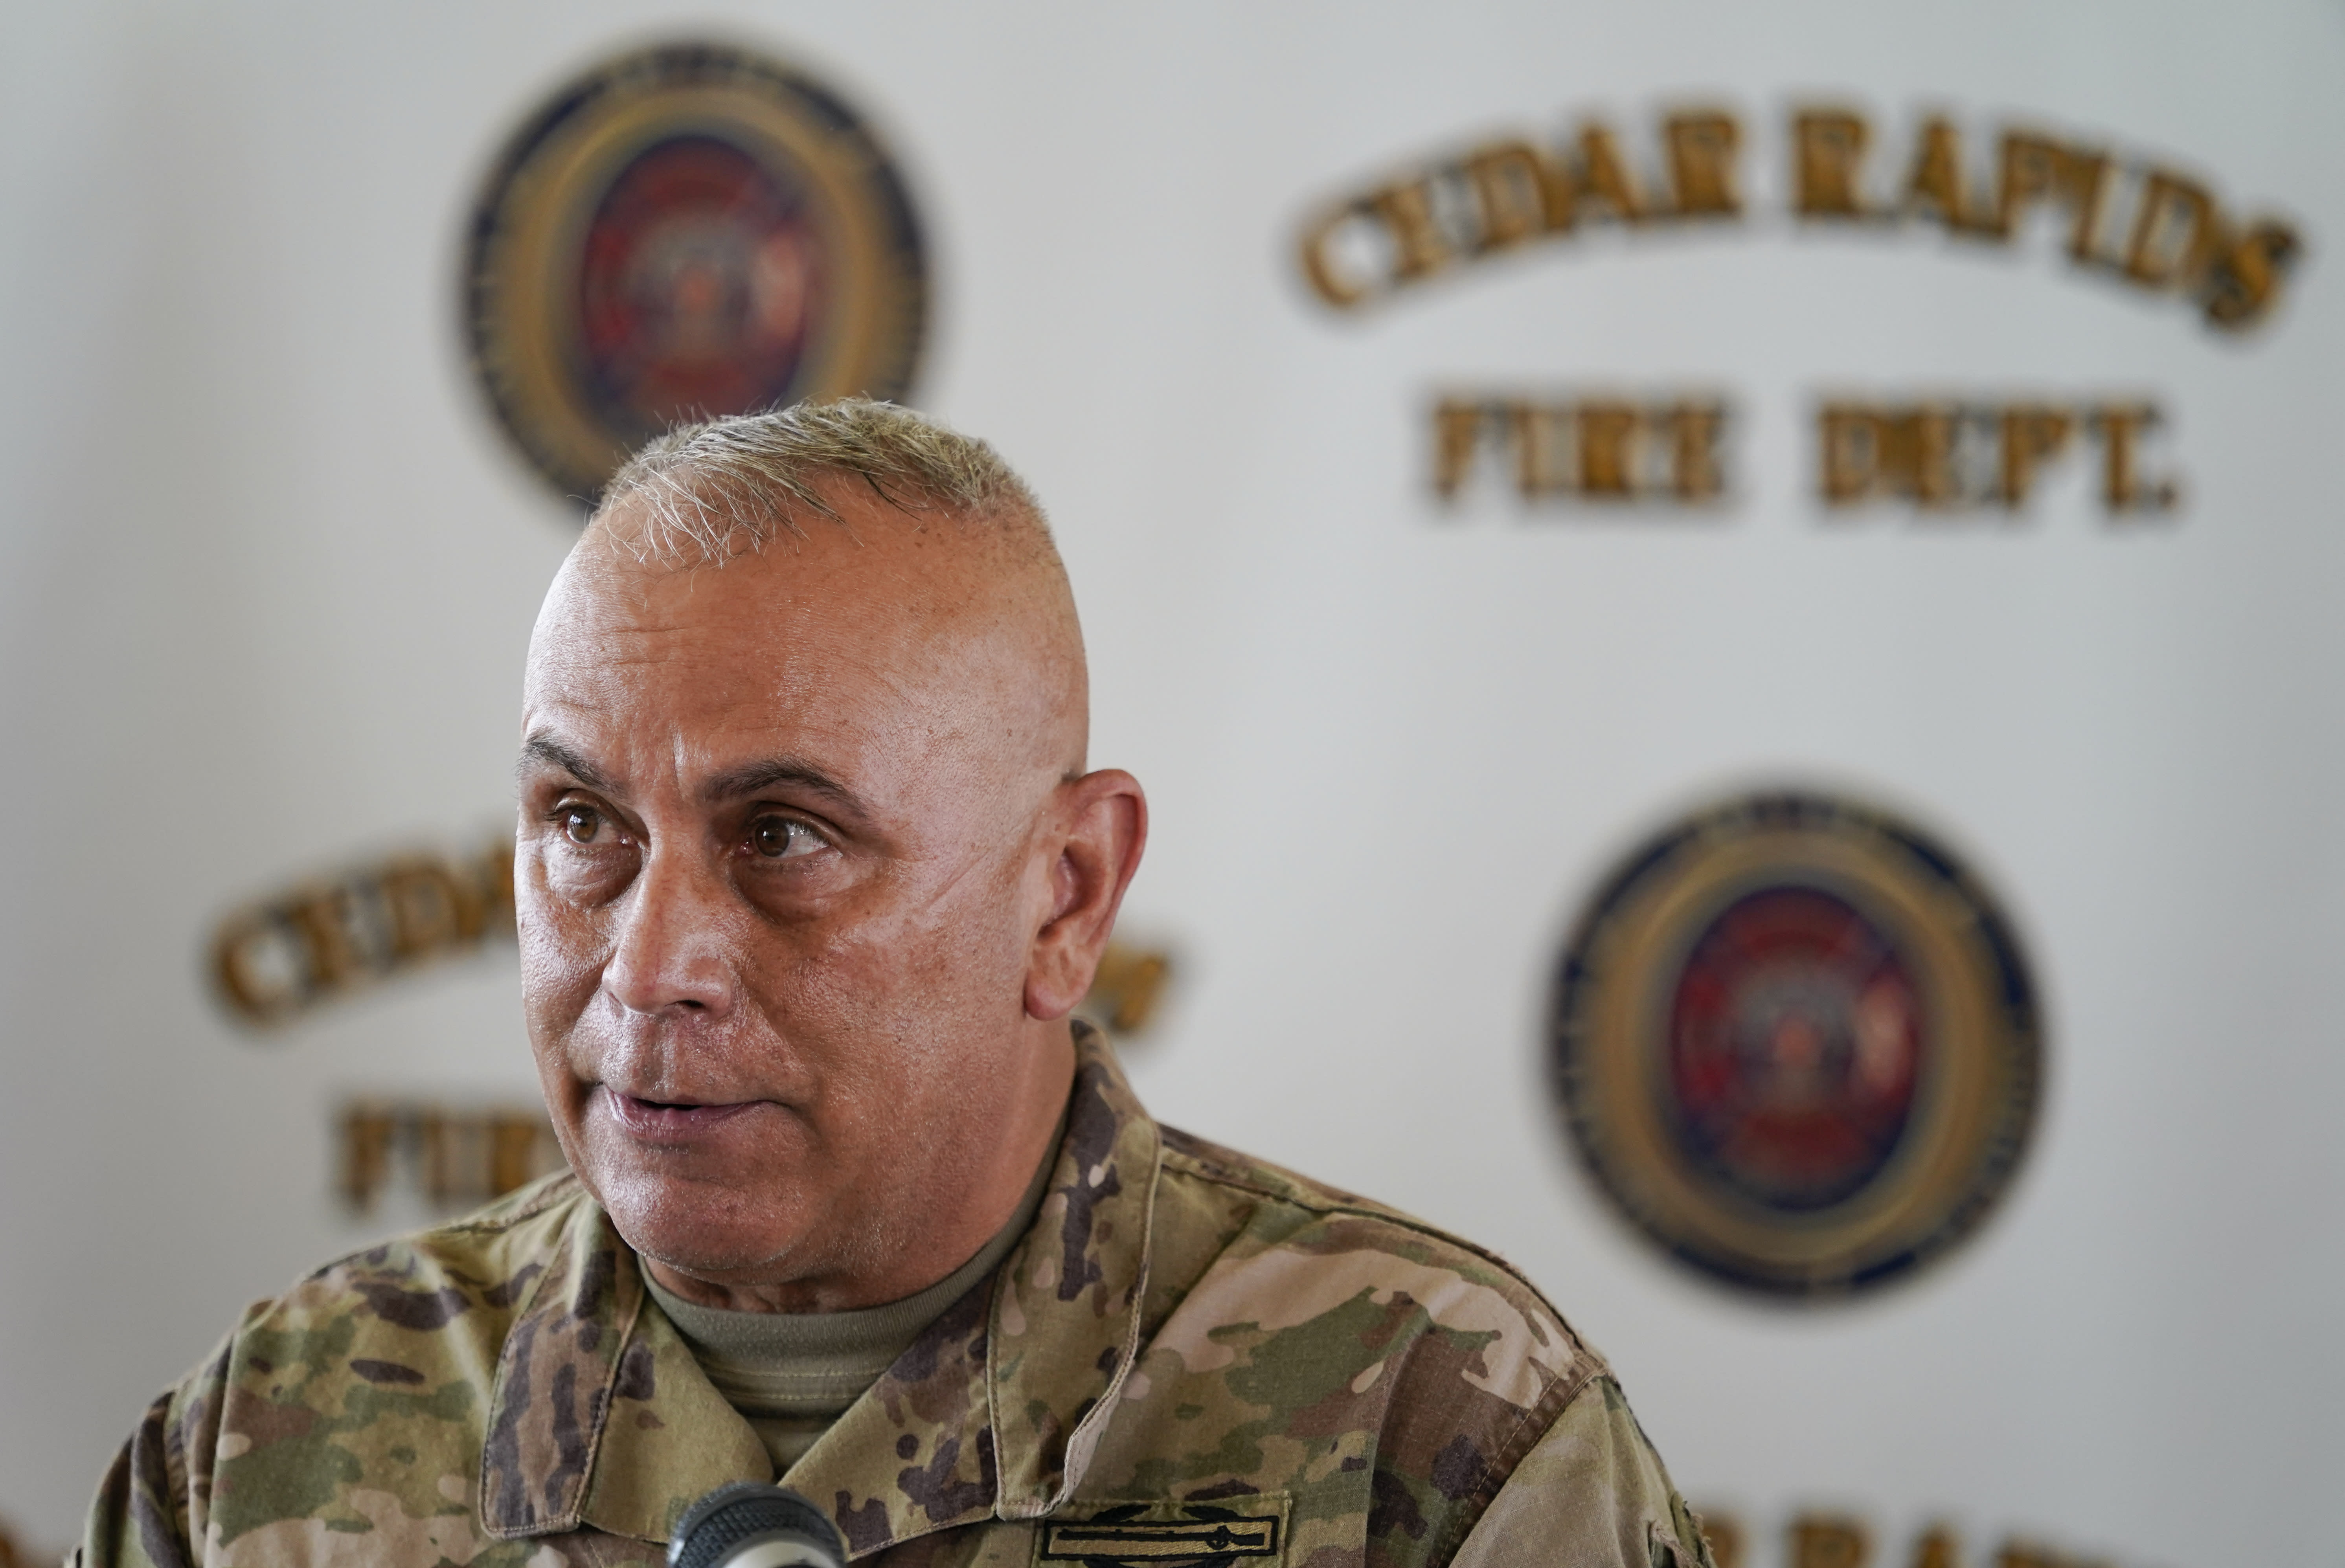 Iowa National Guard commander Adjutant General Benjamin Corell speaks during a news conference, Friday, Aug. 14, 2020, in Cedar Rapids, Iowa. Gov. Kim Reynolds pushed back Friday against criticism that she has been slow to respond to a wind storm that devastated the state and promised more help soon for tens of thousands of residents entering their fifth day without electricity. (AP Photo/Charlie Neibergall)